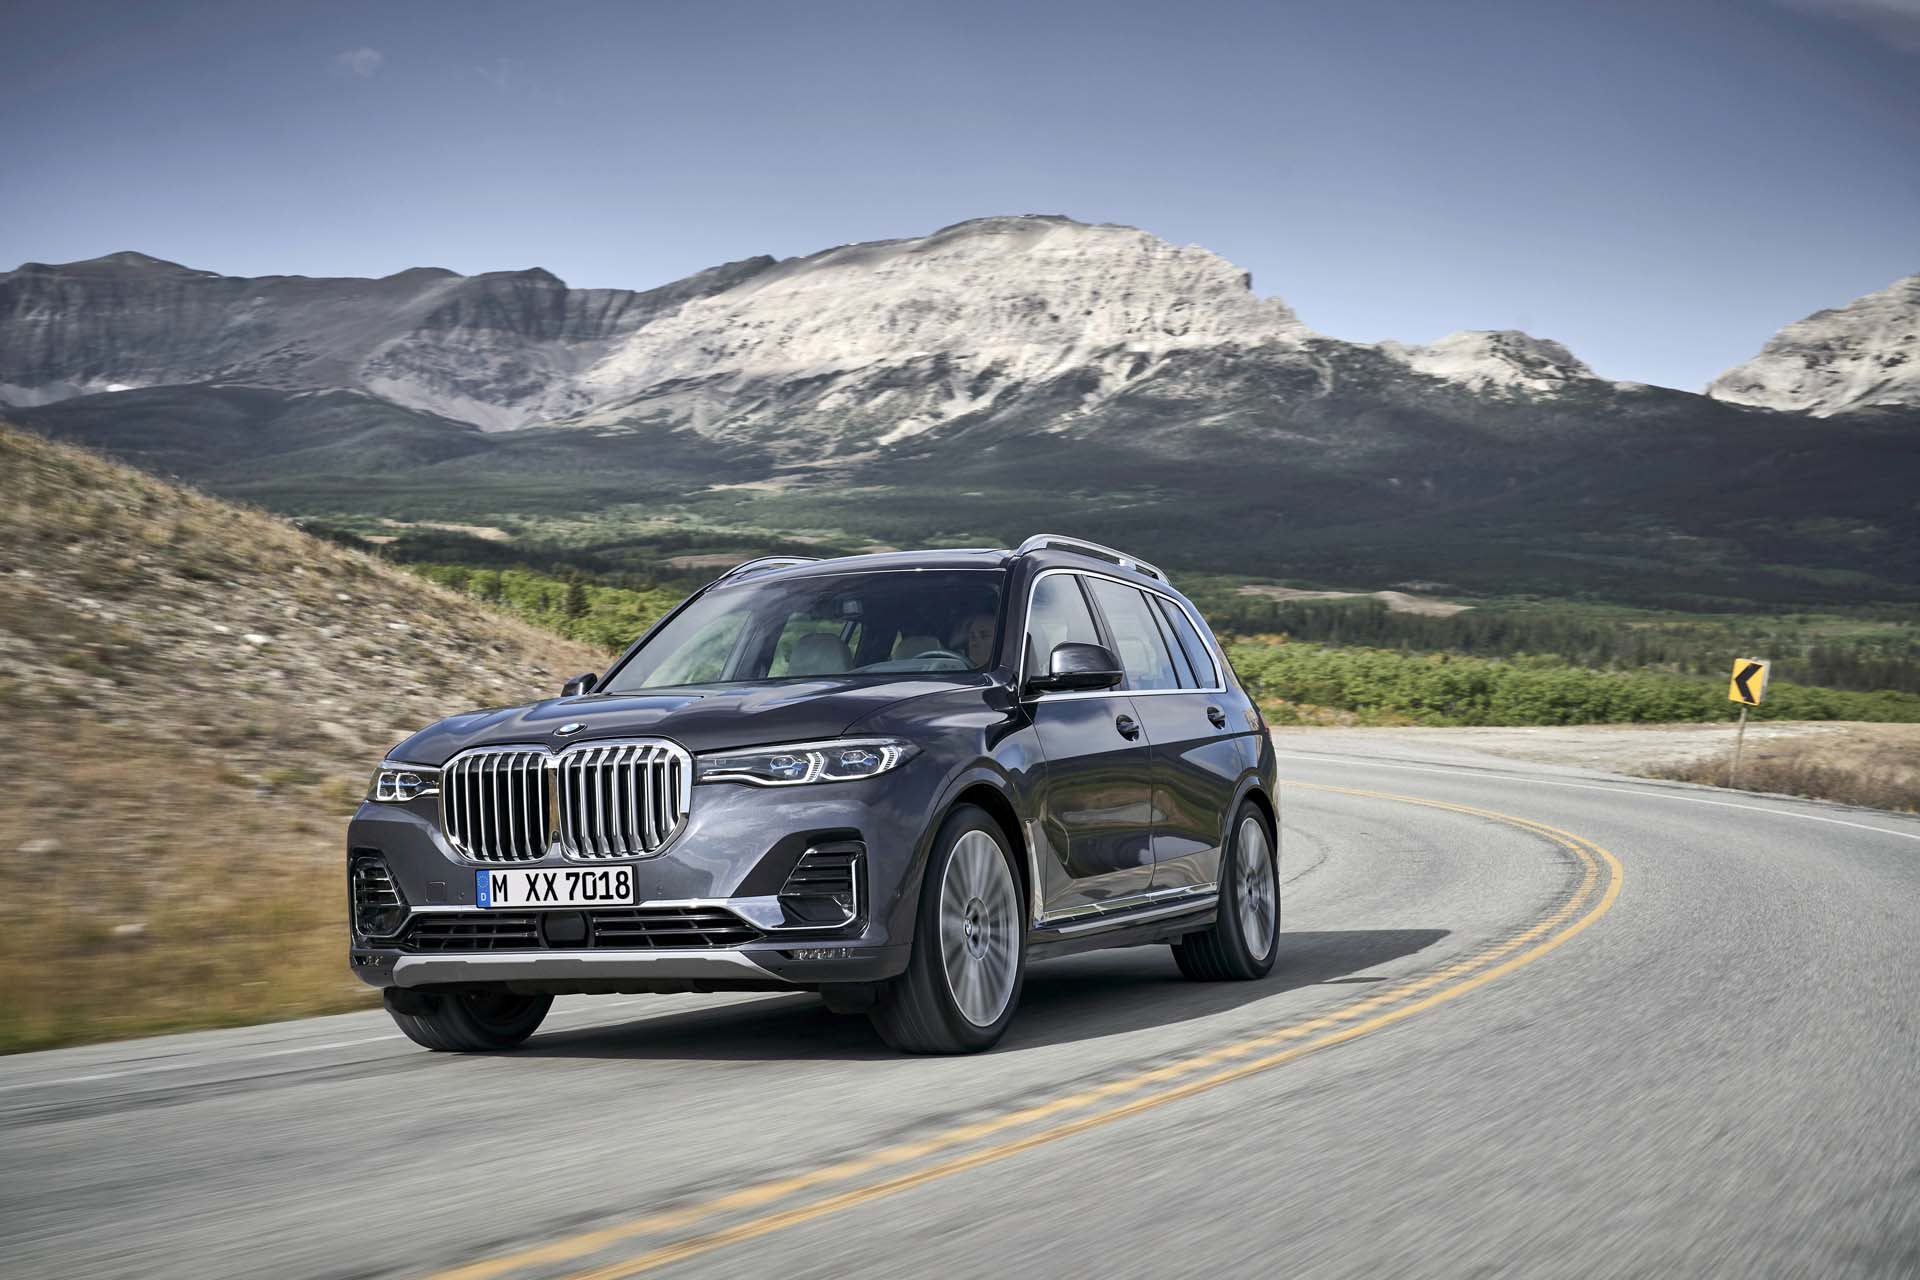 18 New 2019 BMW X7 Suv Series Price Design and Review